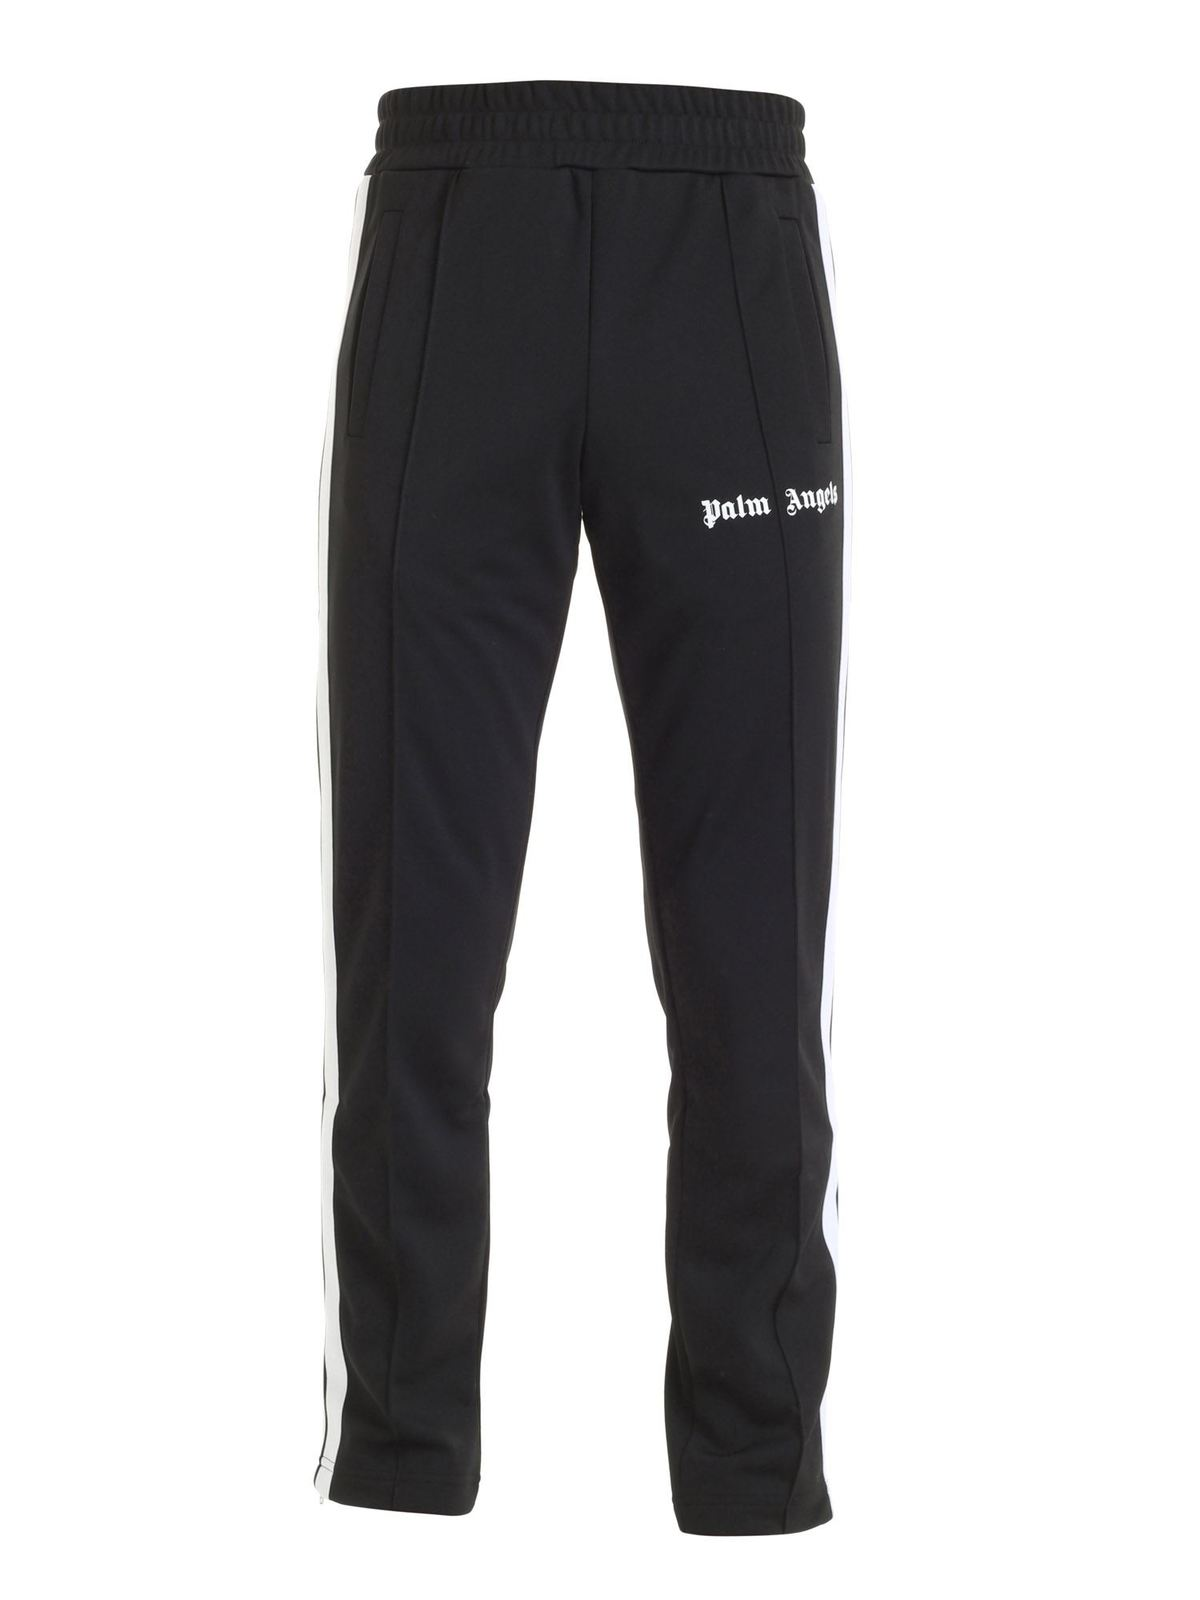 Palm Angels Linings CLASSIC TRACK PANTS IN BLACK